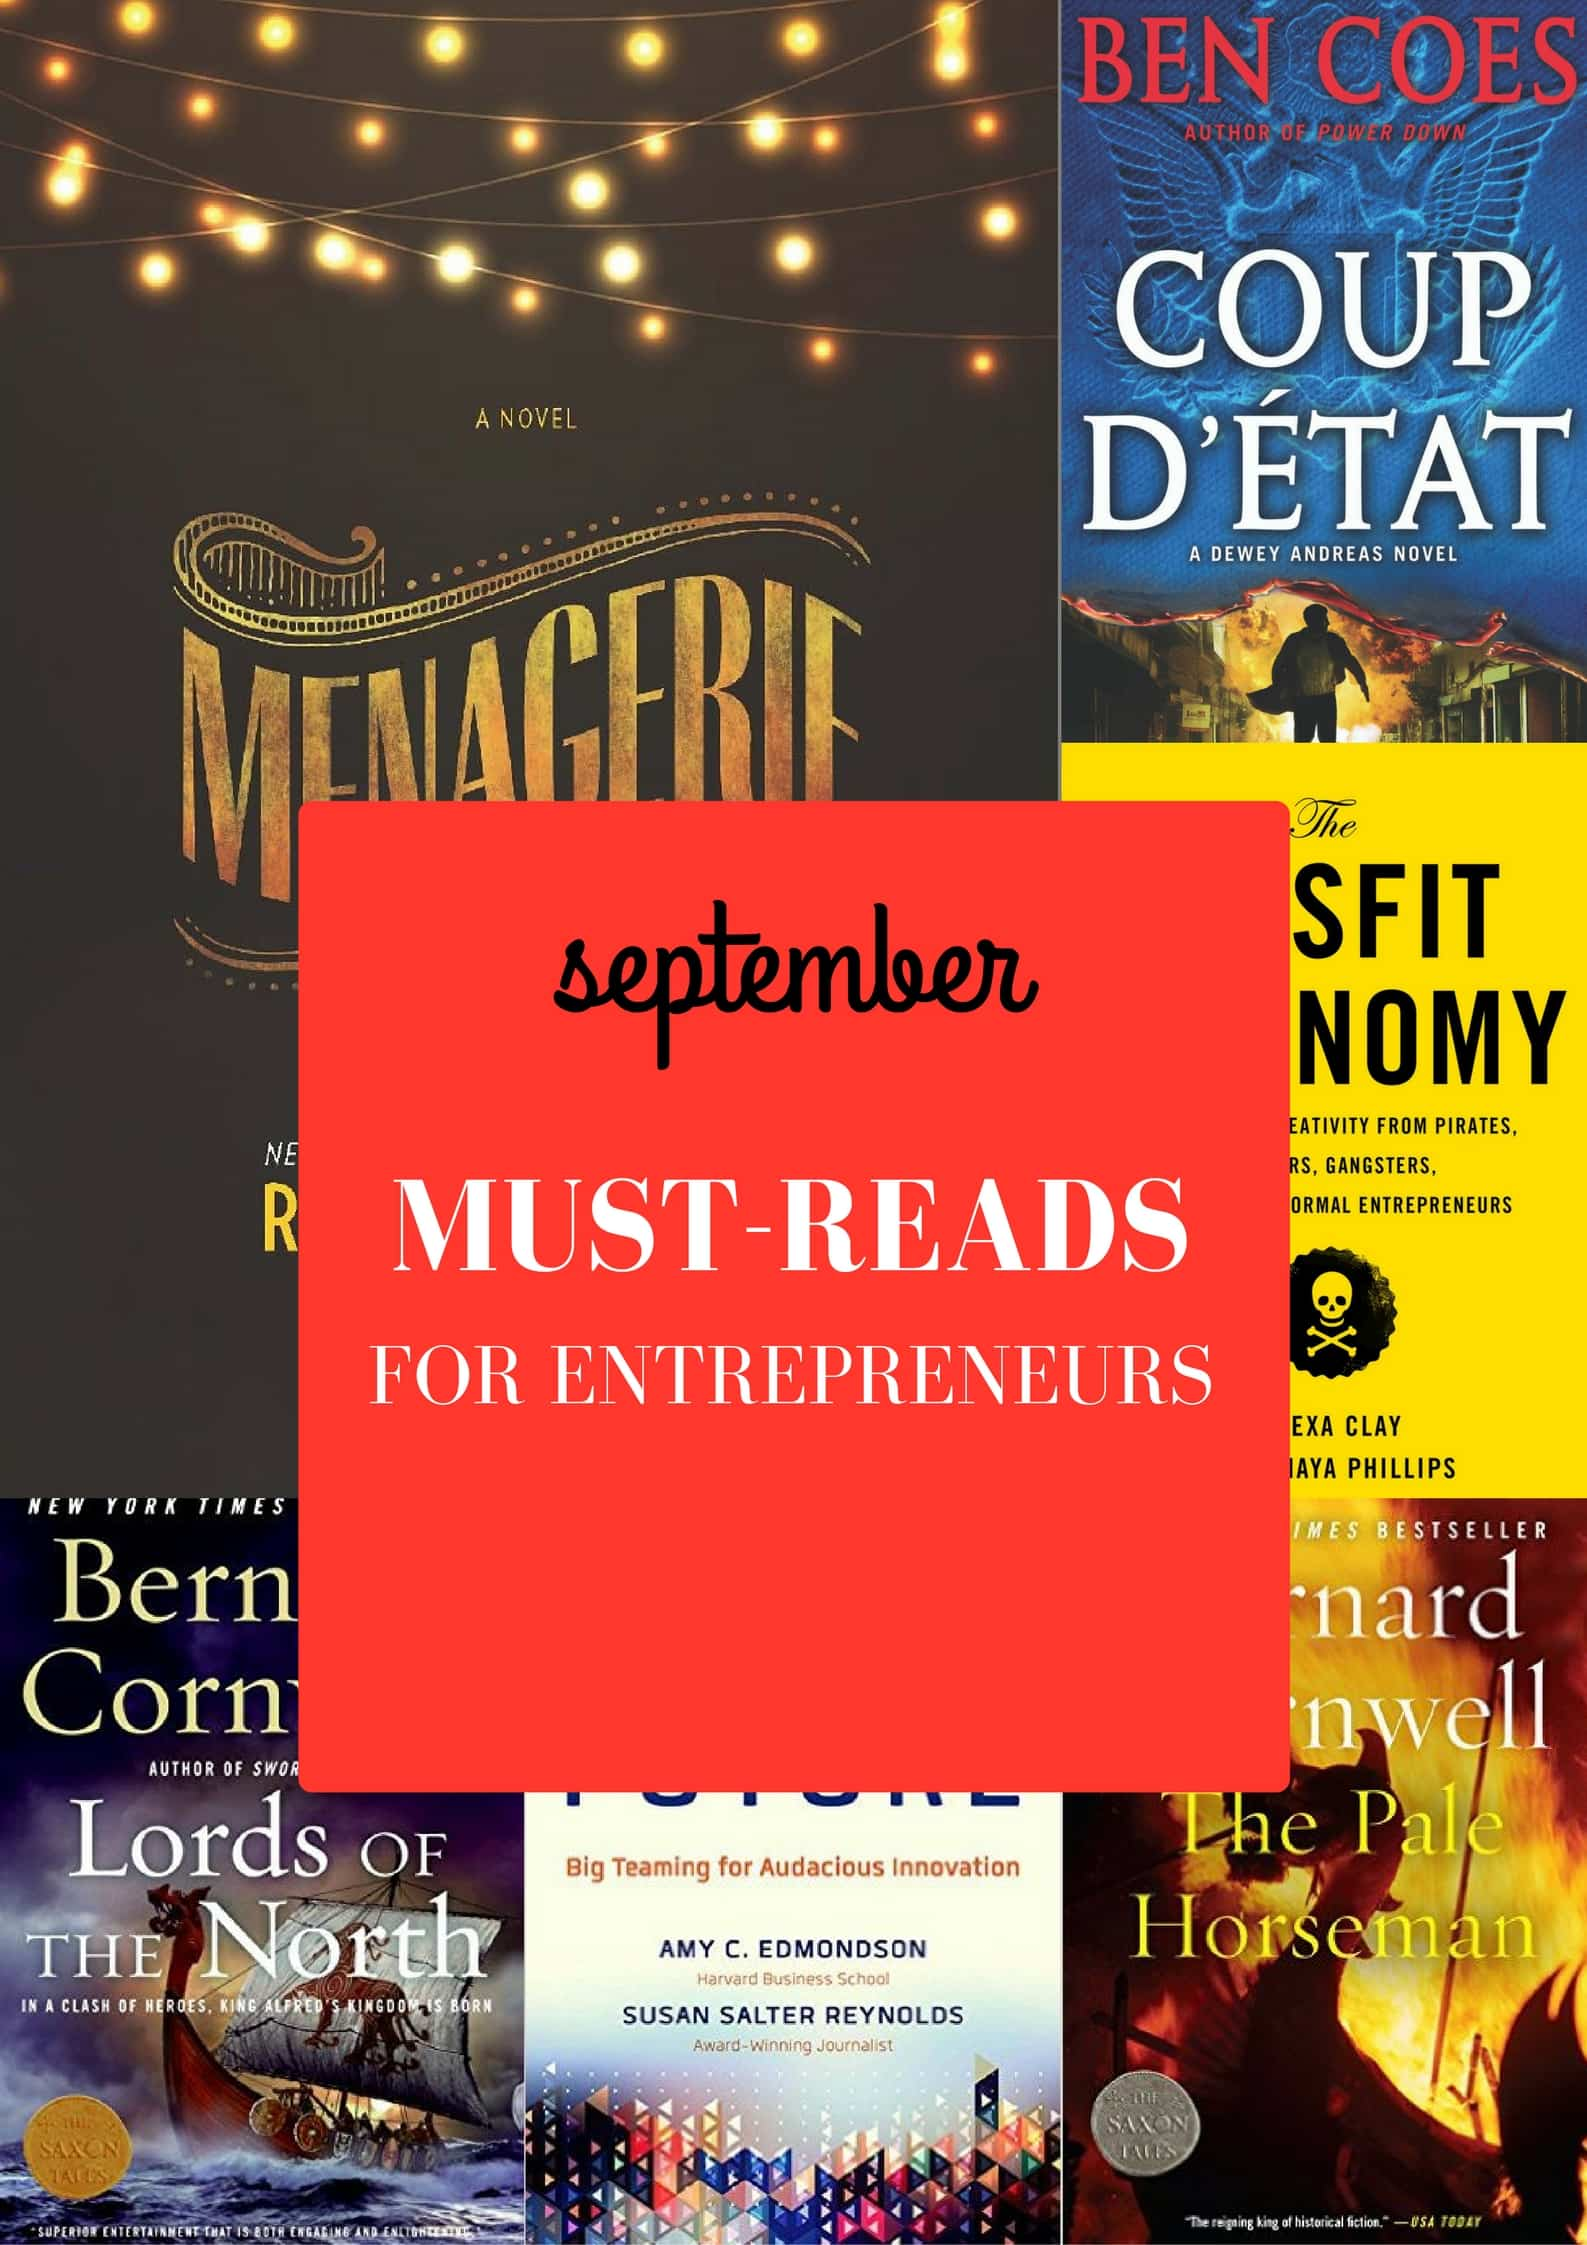 The Reading Life of an Entrepreneur: September Must-Reads